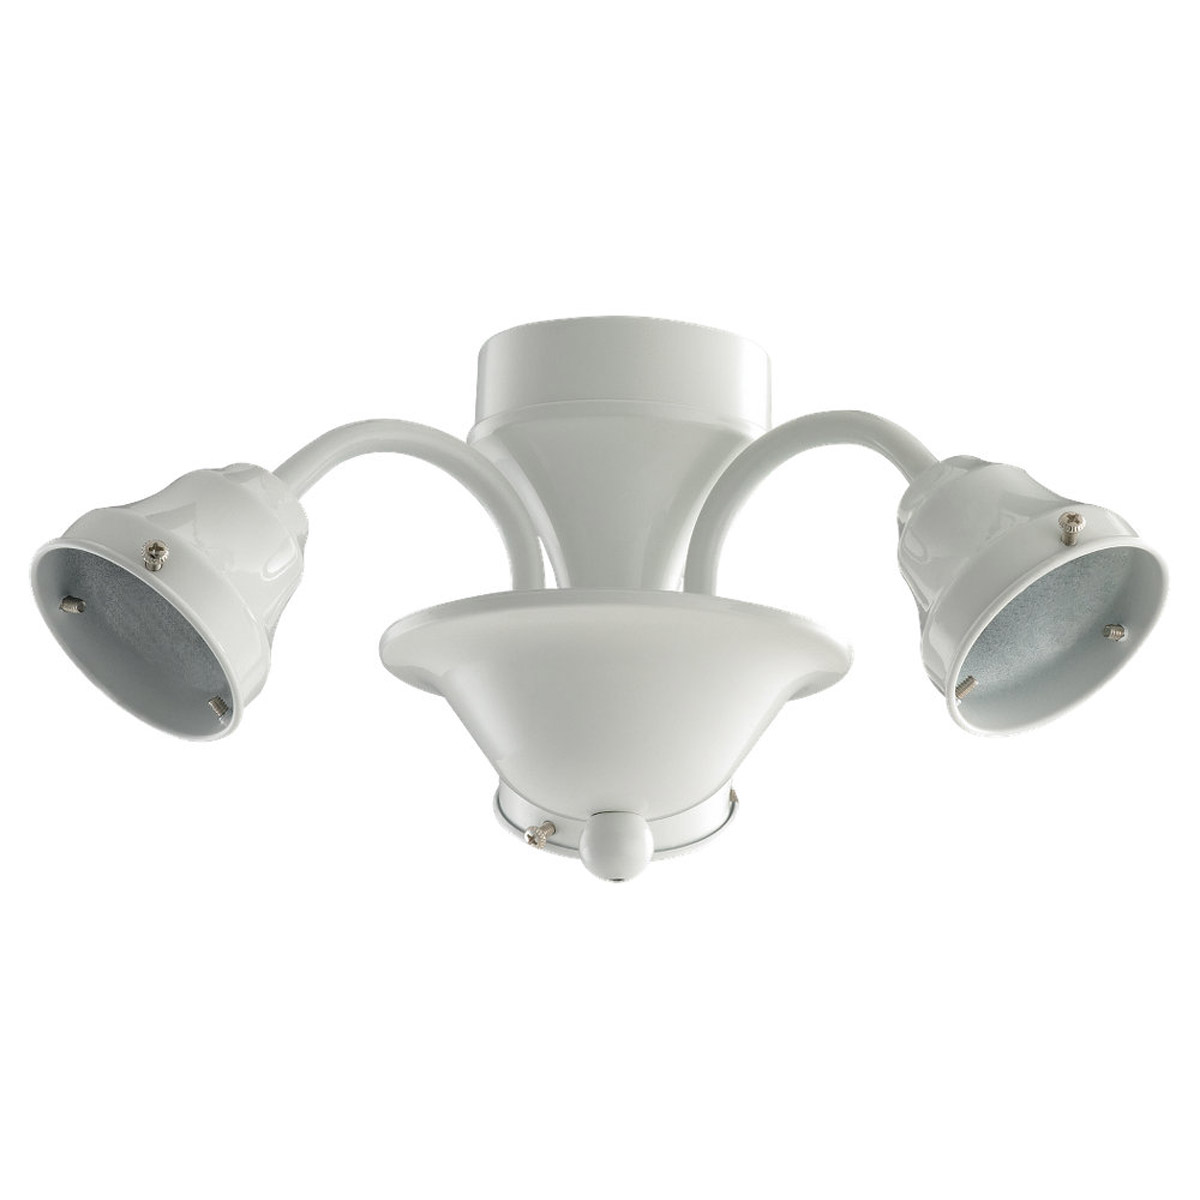 Sea Gull Lighting Signature 3 Light Fan Light Kit in White 16122B-15